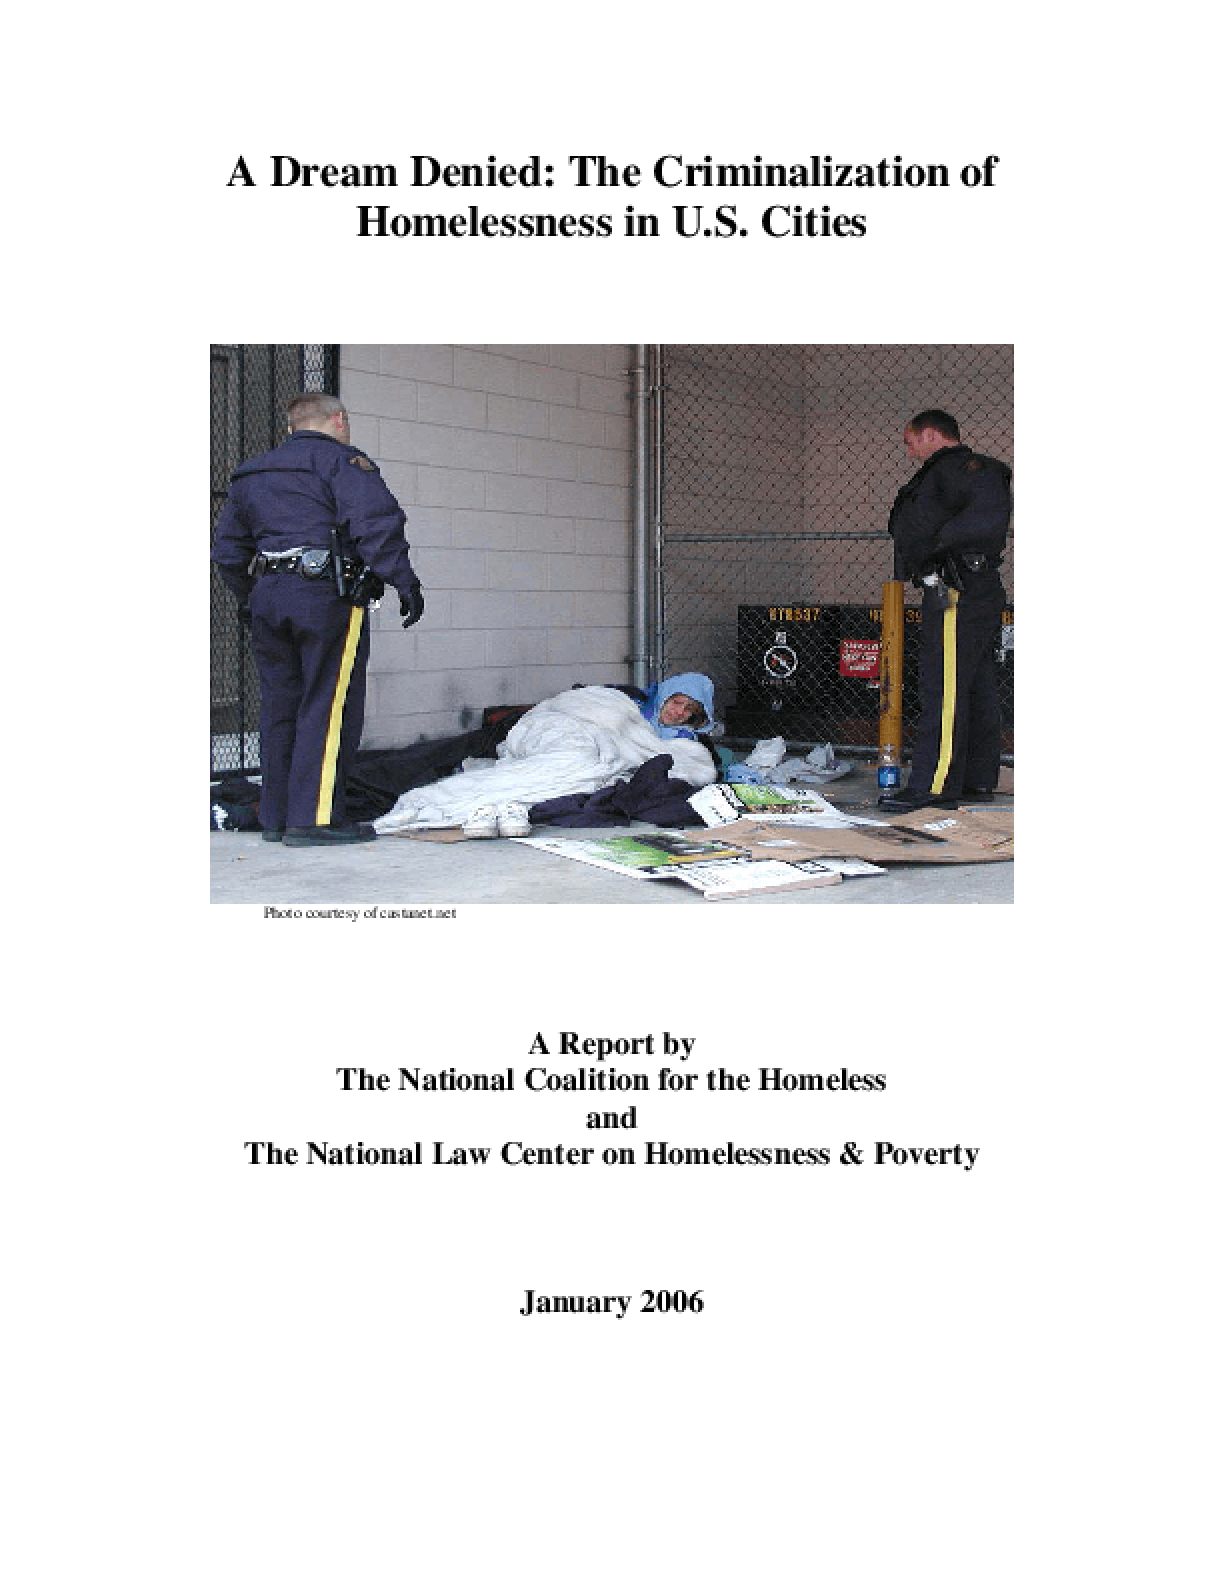 A Dream Denied: The Criminalization of Homelessness in U.S. Cities 2005